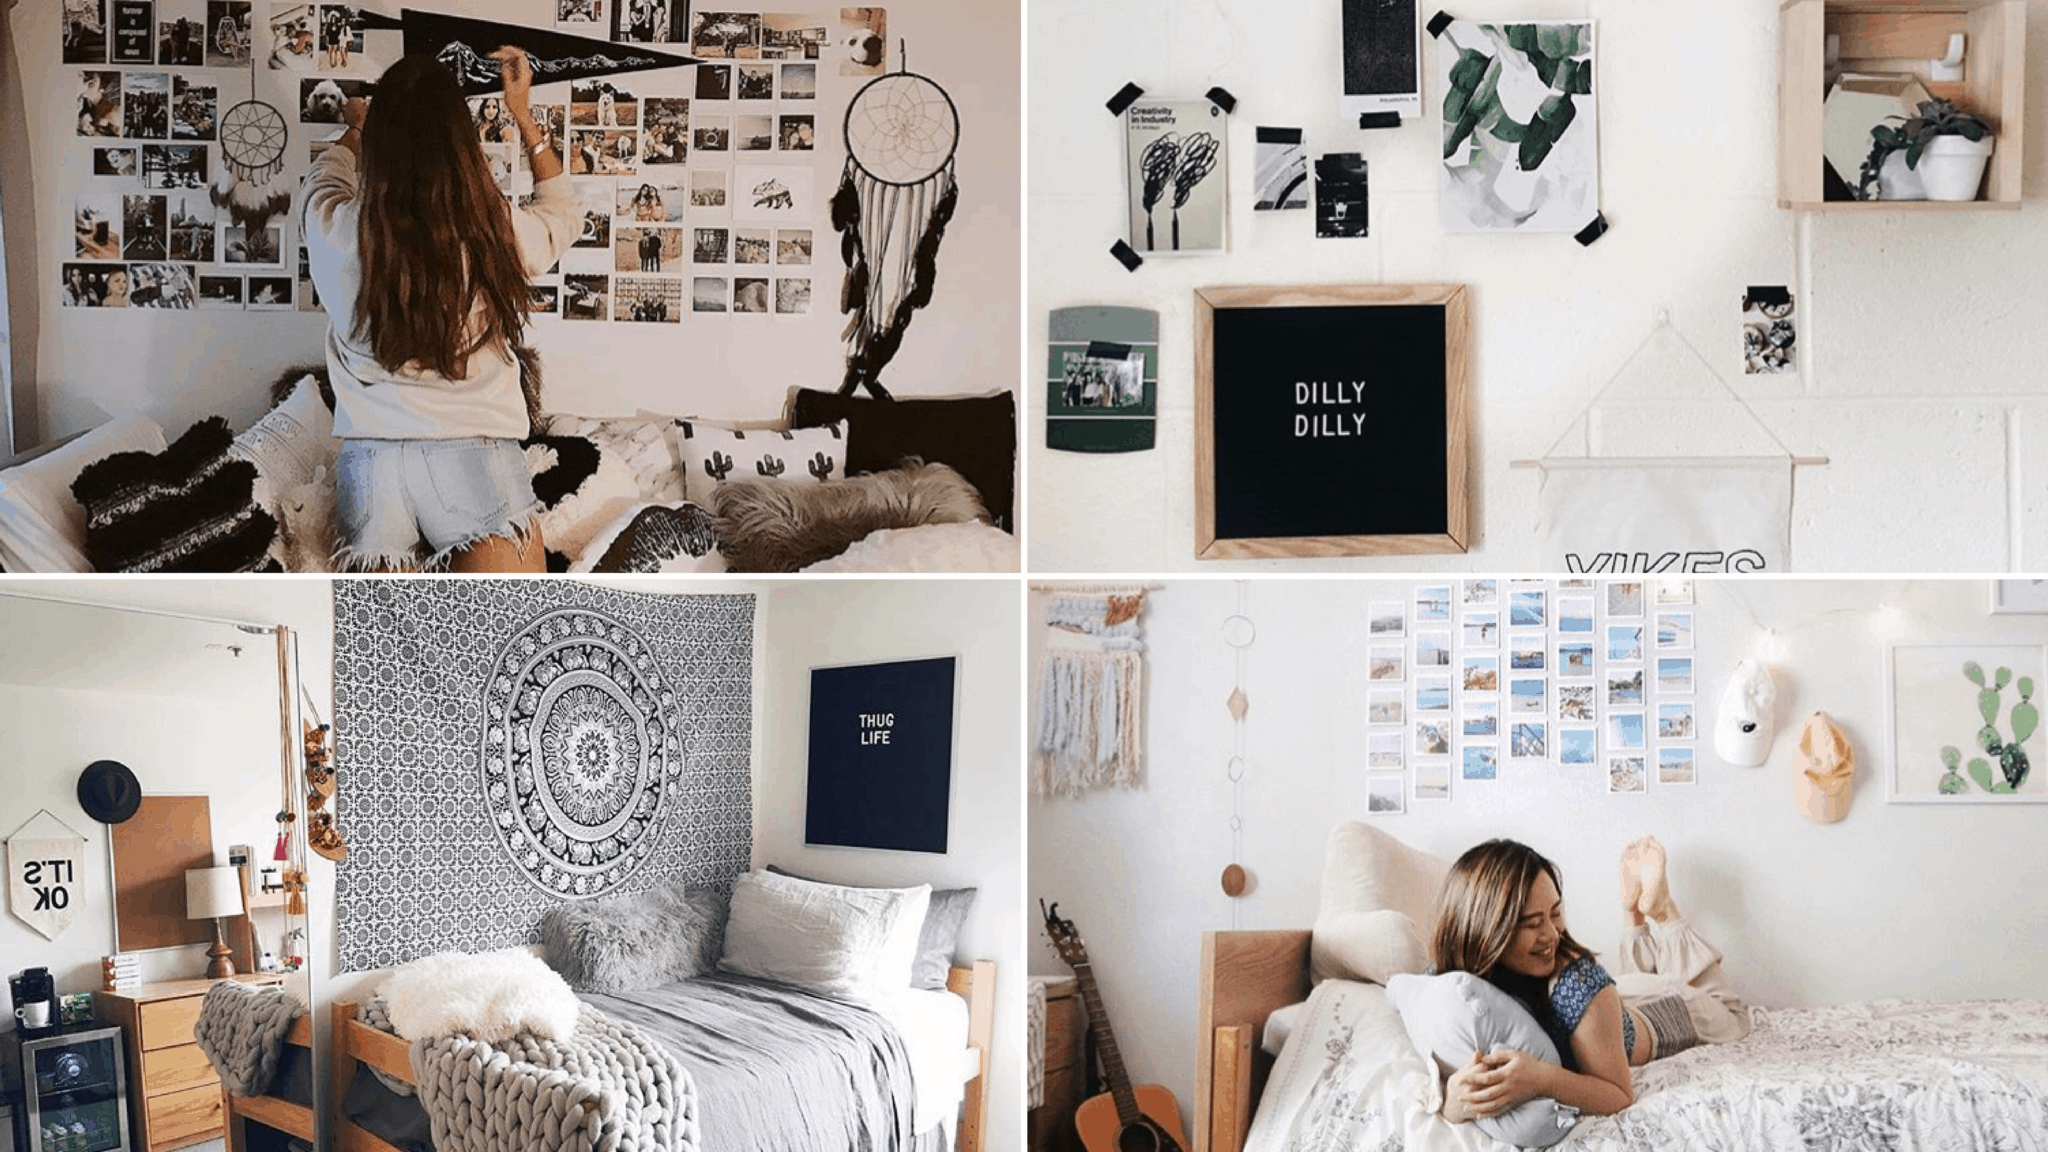 9 genius ways to decorate your dorm room walls by sophia lee - How to decorate a dorm room ...